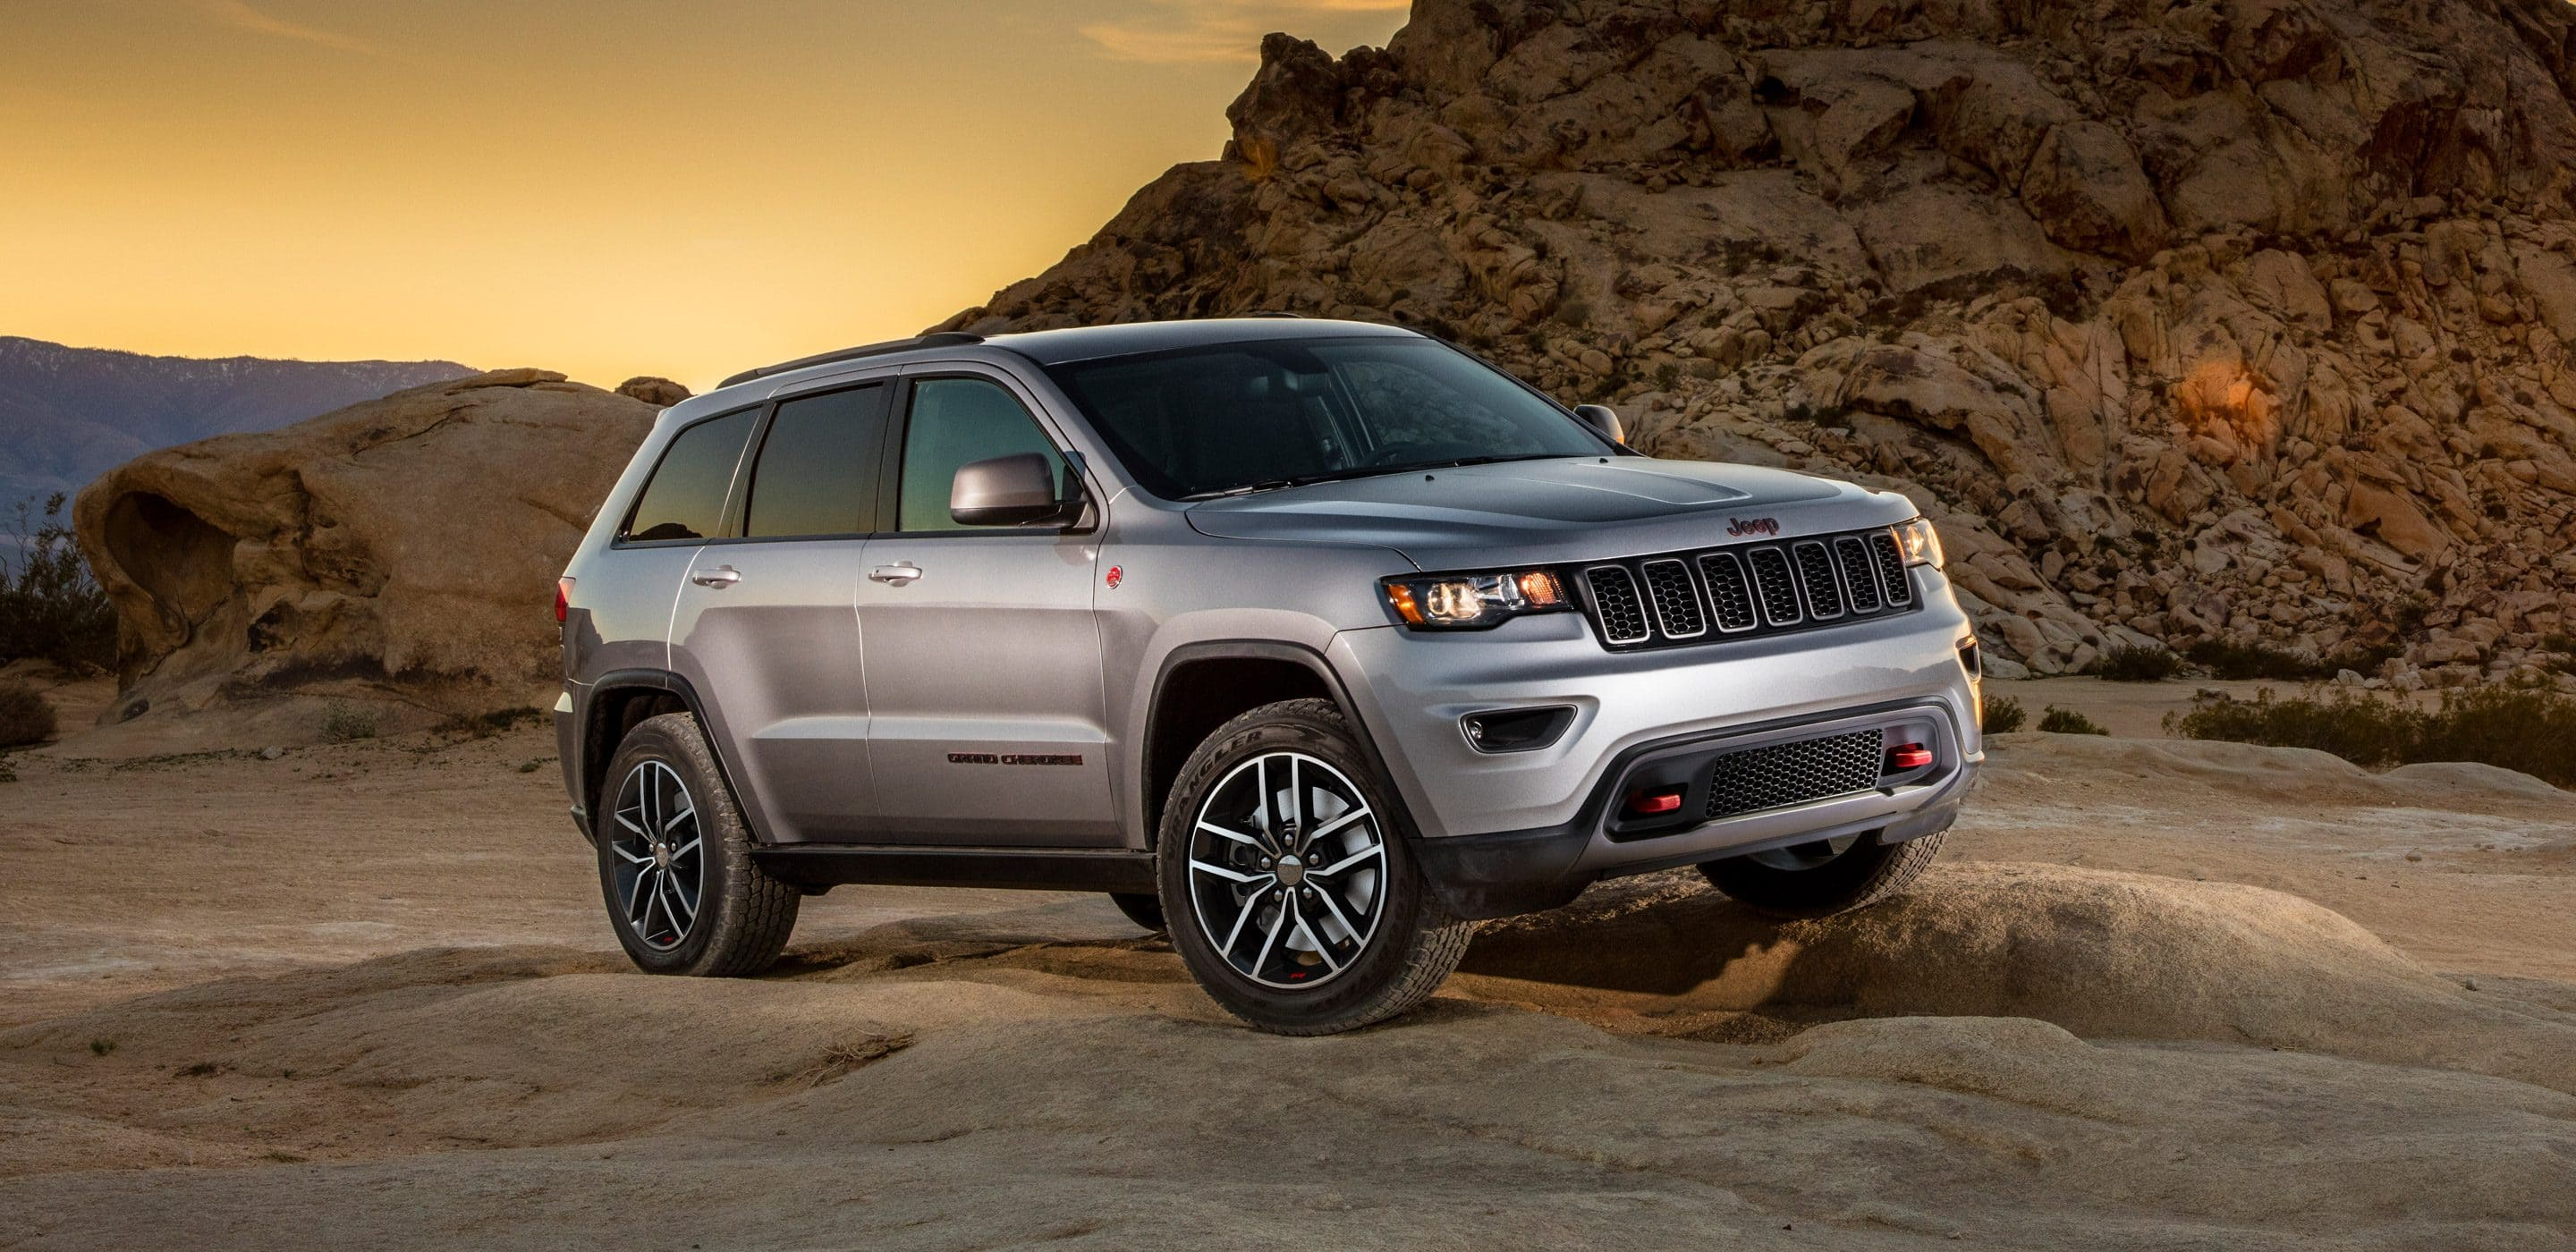 new 2018 jeep grand cherokee for sale near long island ny port jefferson ny lease or buy a. Black Bedroom Furniture Sets. Home Design Ideas